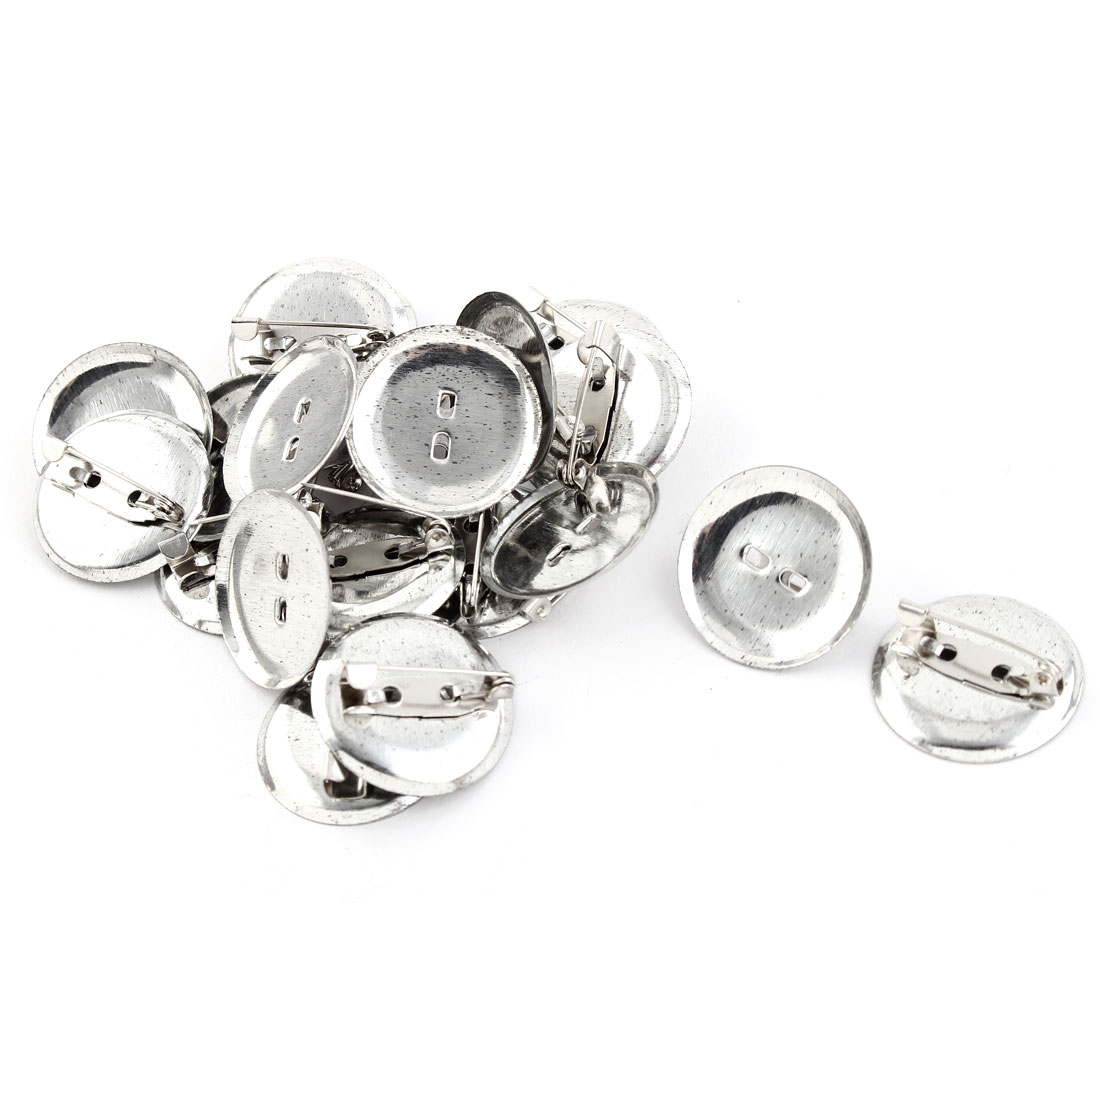 Metal Round Safety Pin Back Brooch Finding DIY Base Silver Tone 2.4cm Dia 20pcs